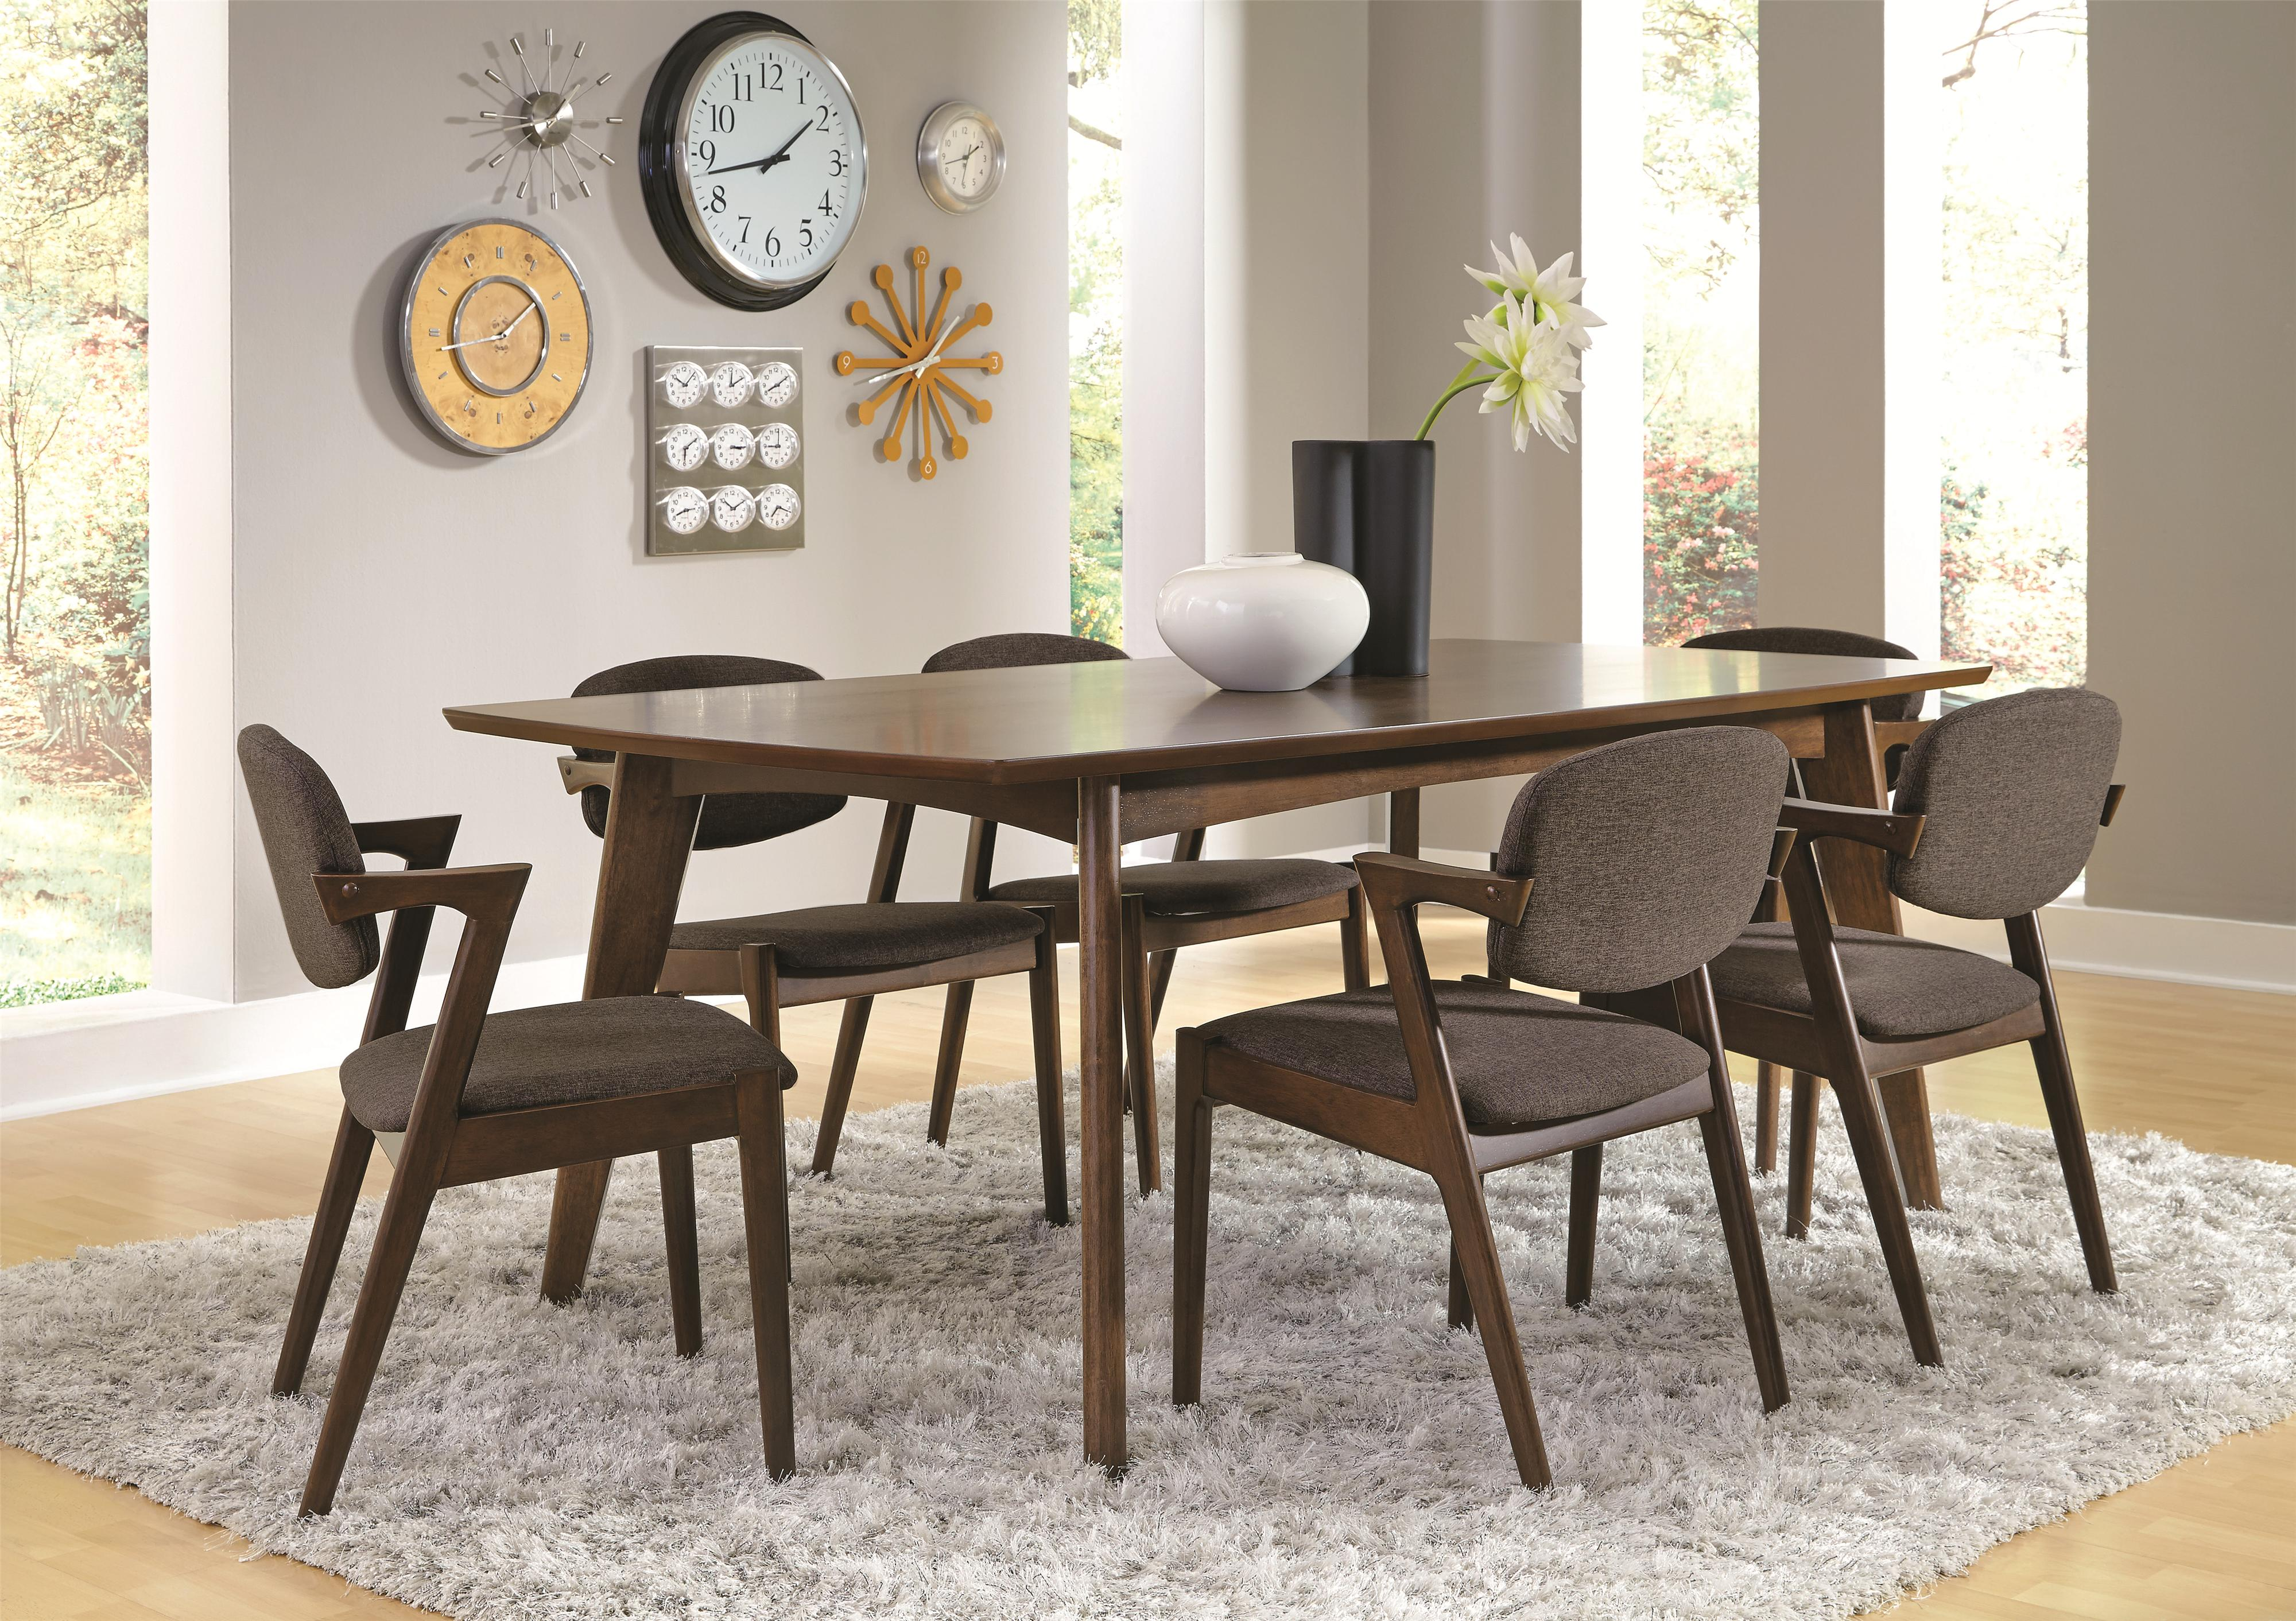 Malone 7 Piece Dining Set by Coaster at Lapeer Furniture & Mattress Center